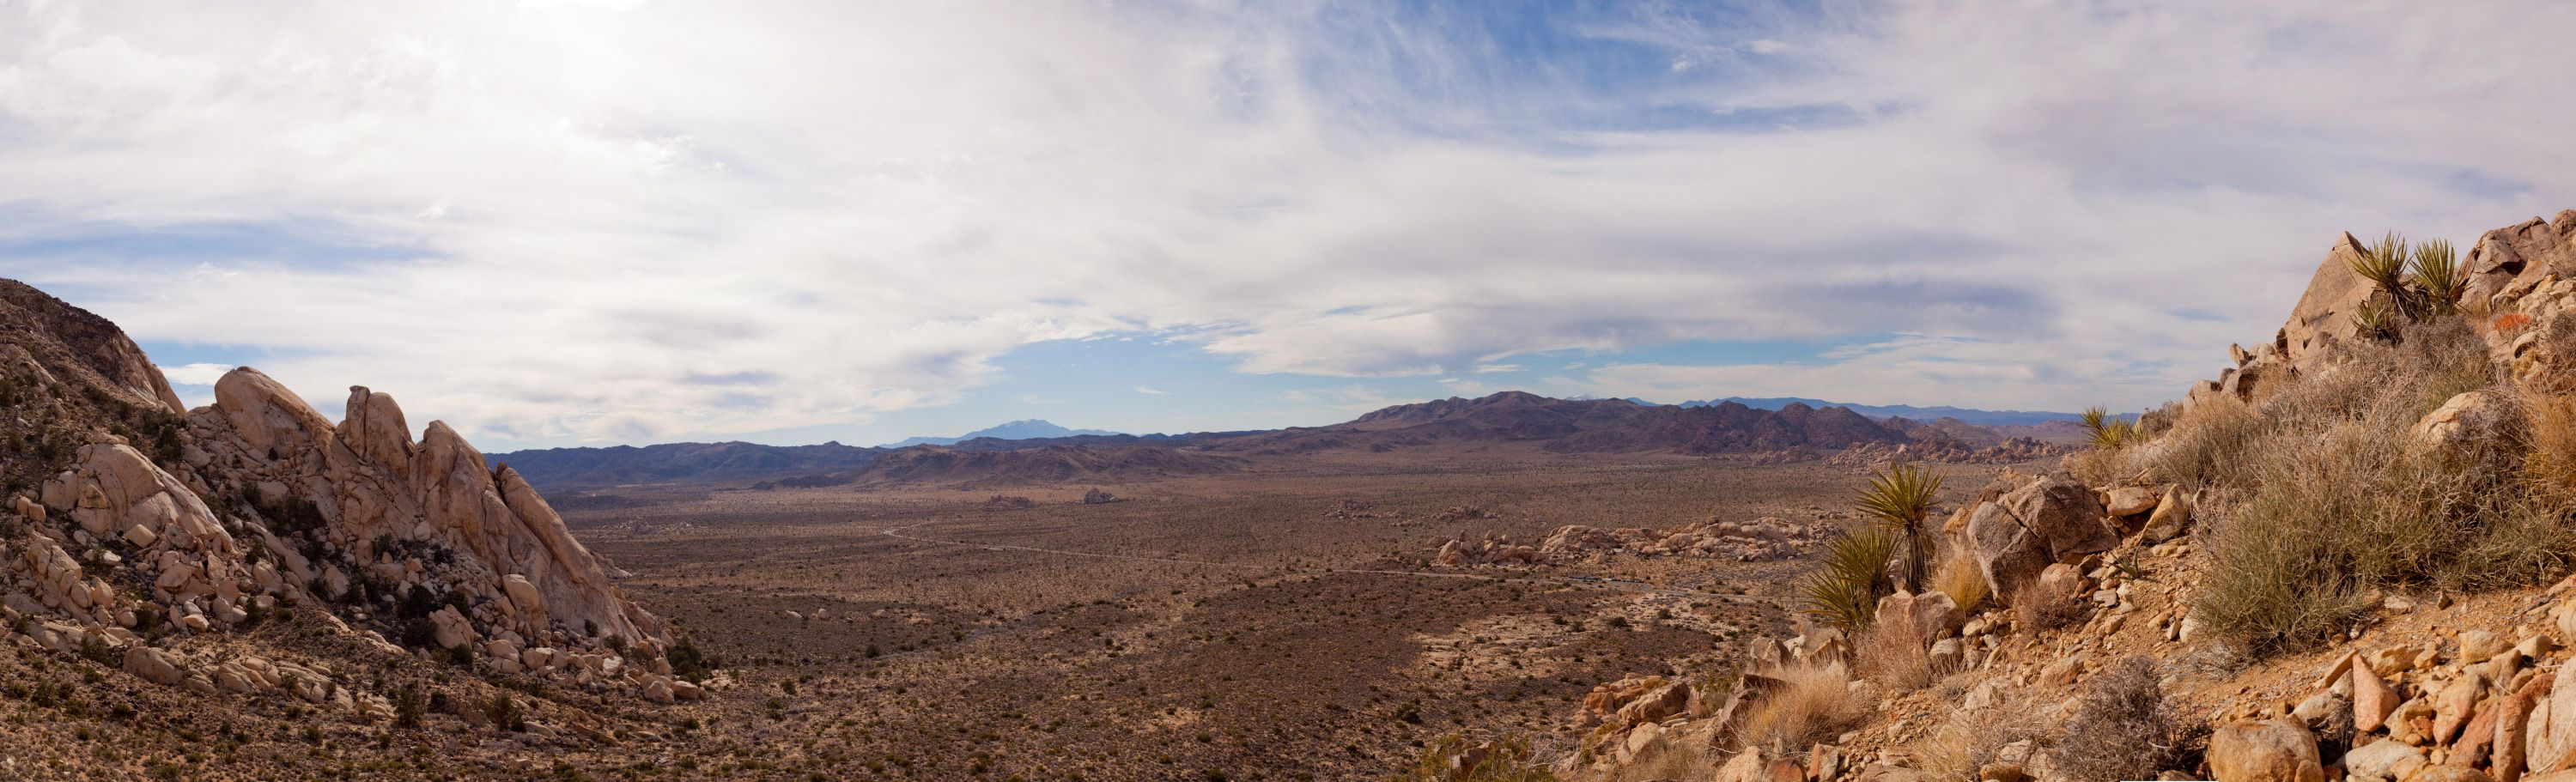 Further up the trail to the top of Mt. Ryan in Joshua Tree National Park.